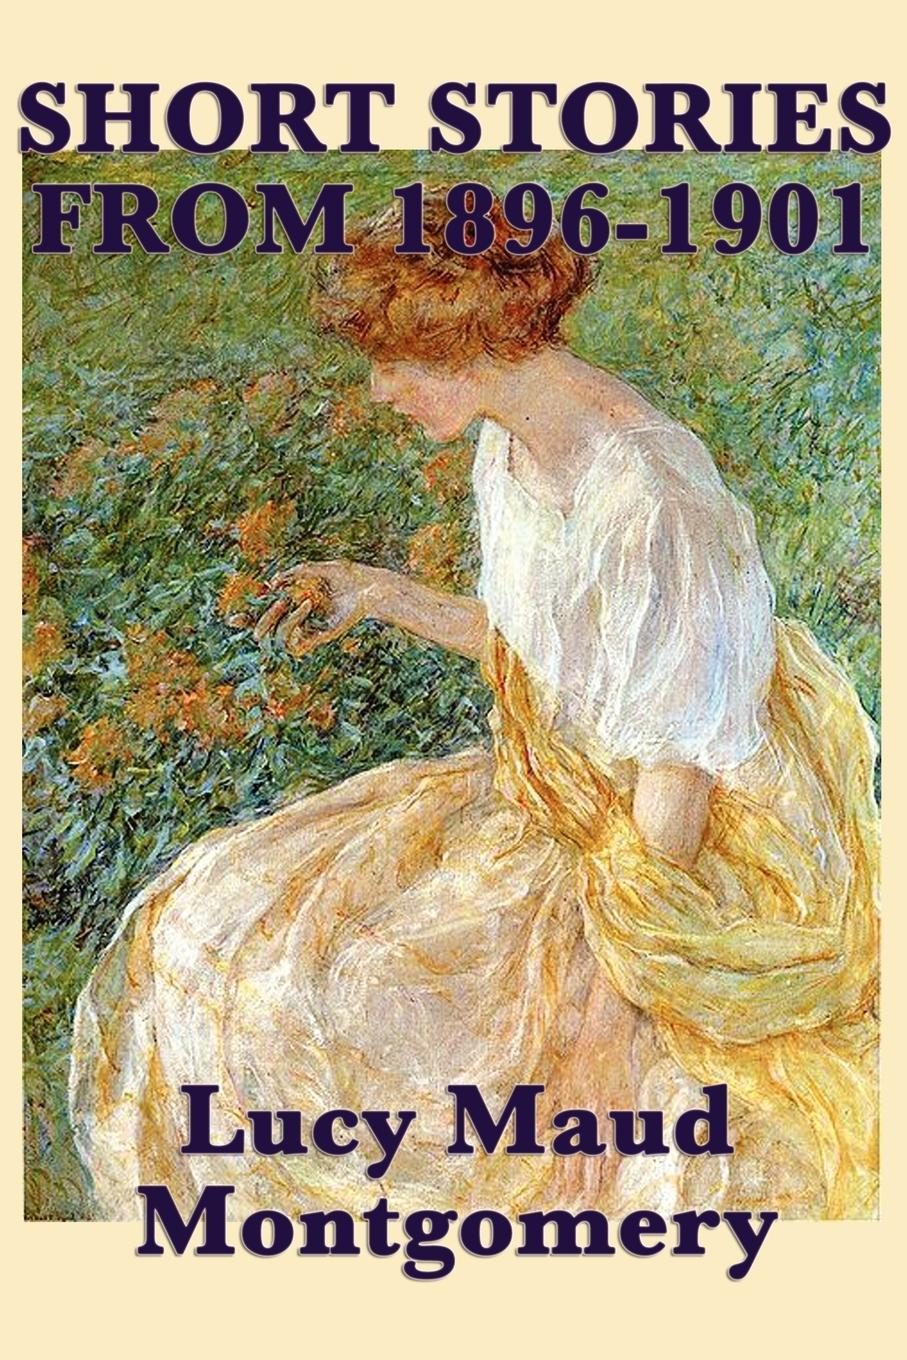 The Short Stories of Lucy Maud Montgomery from 1896-1901 - Montgomery, Lucy Maud